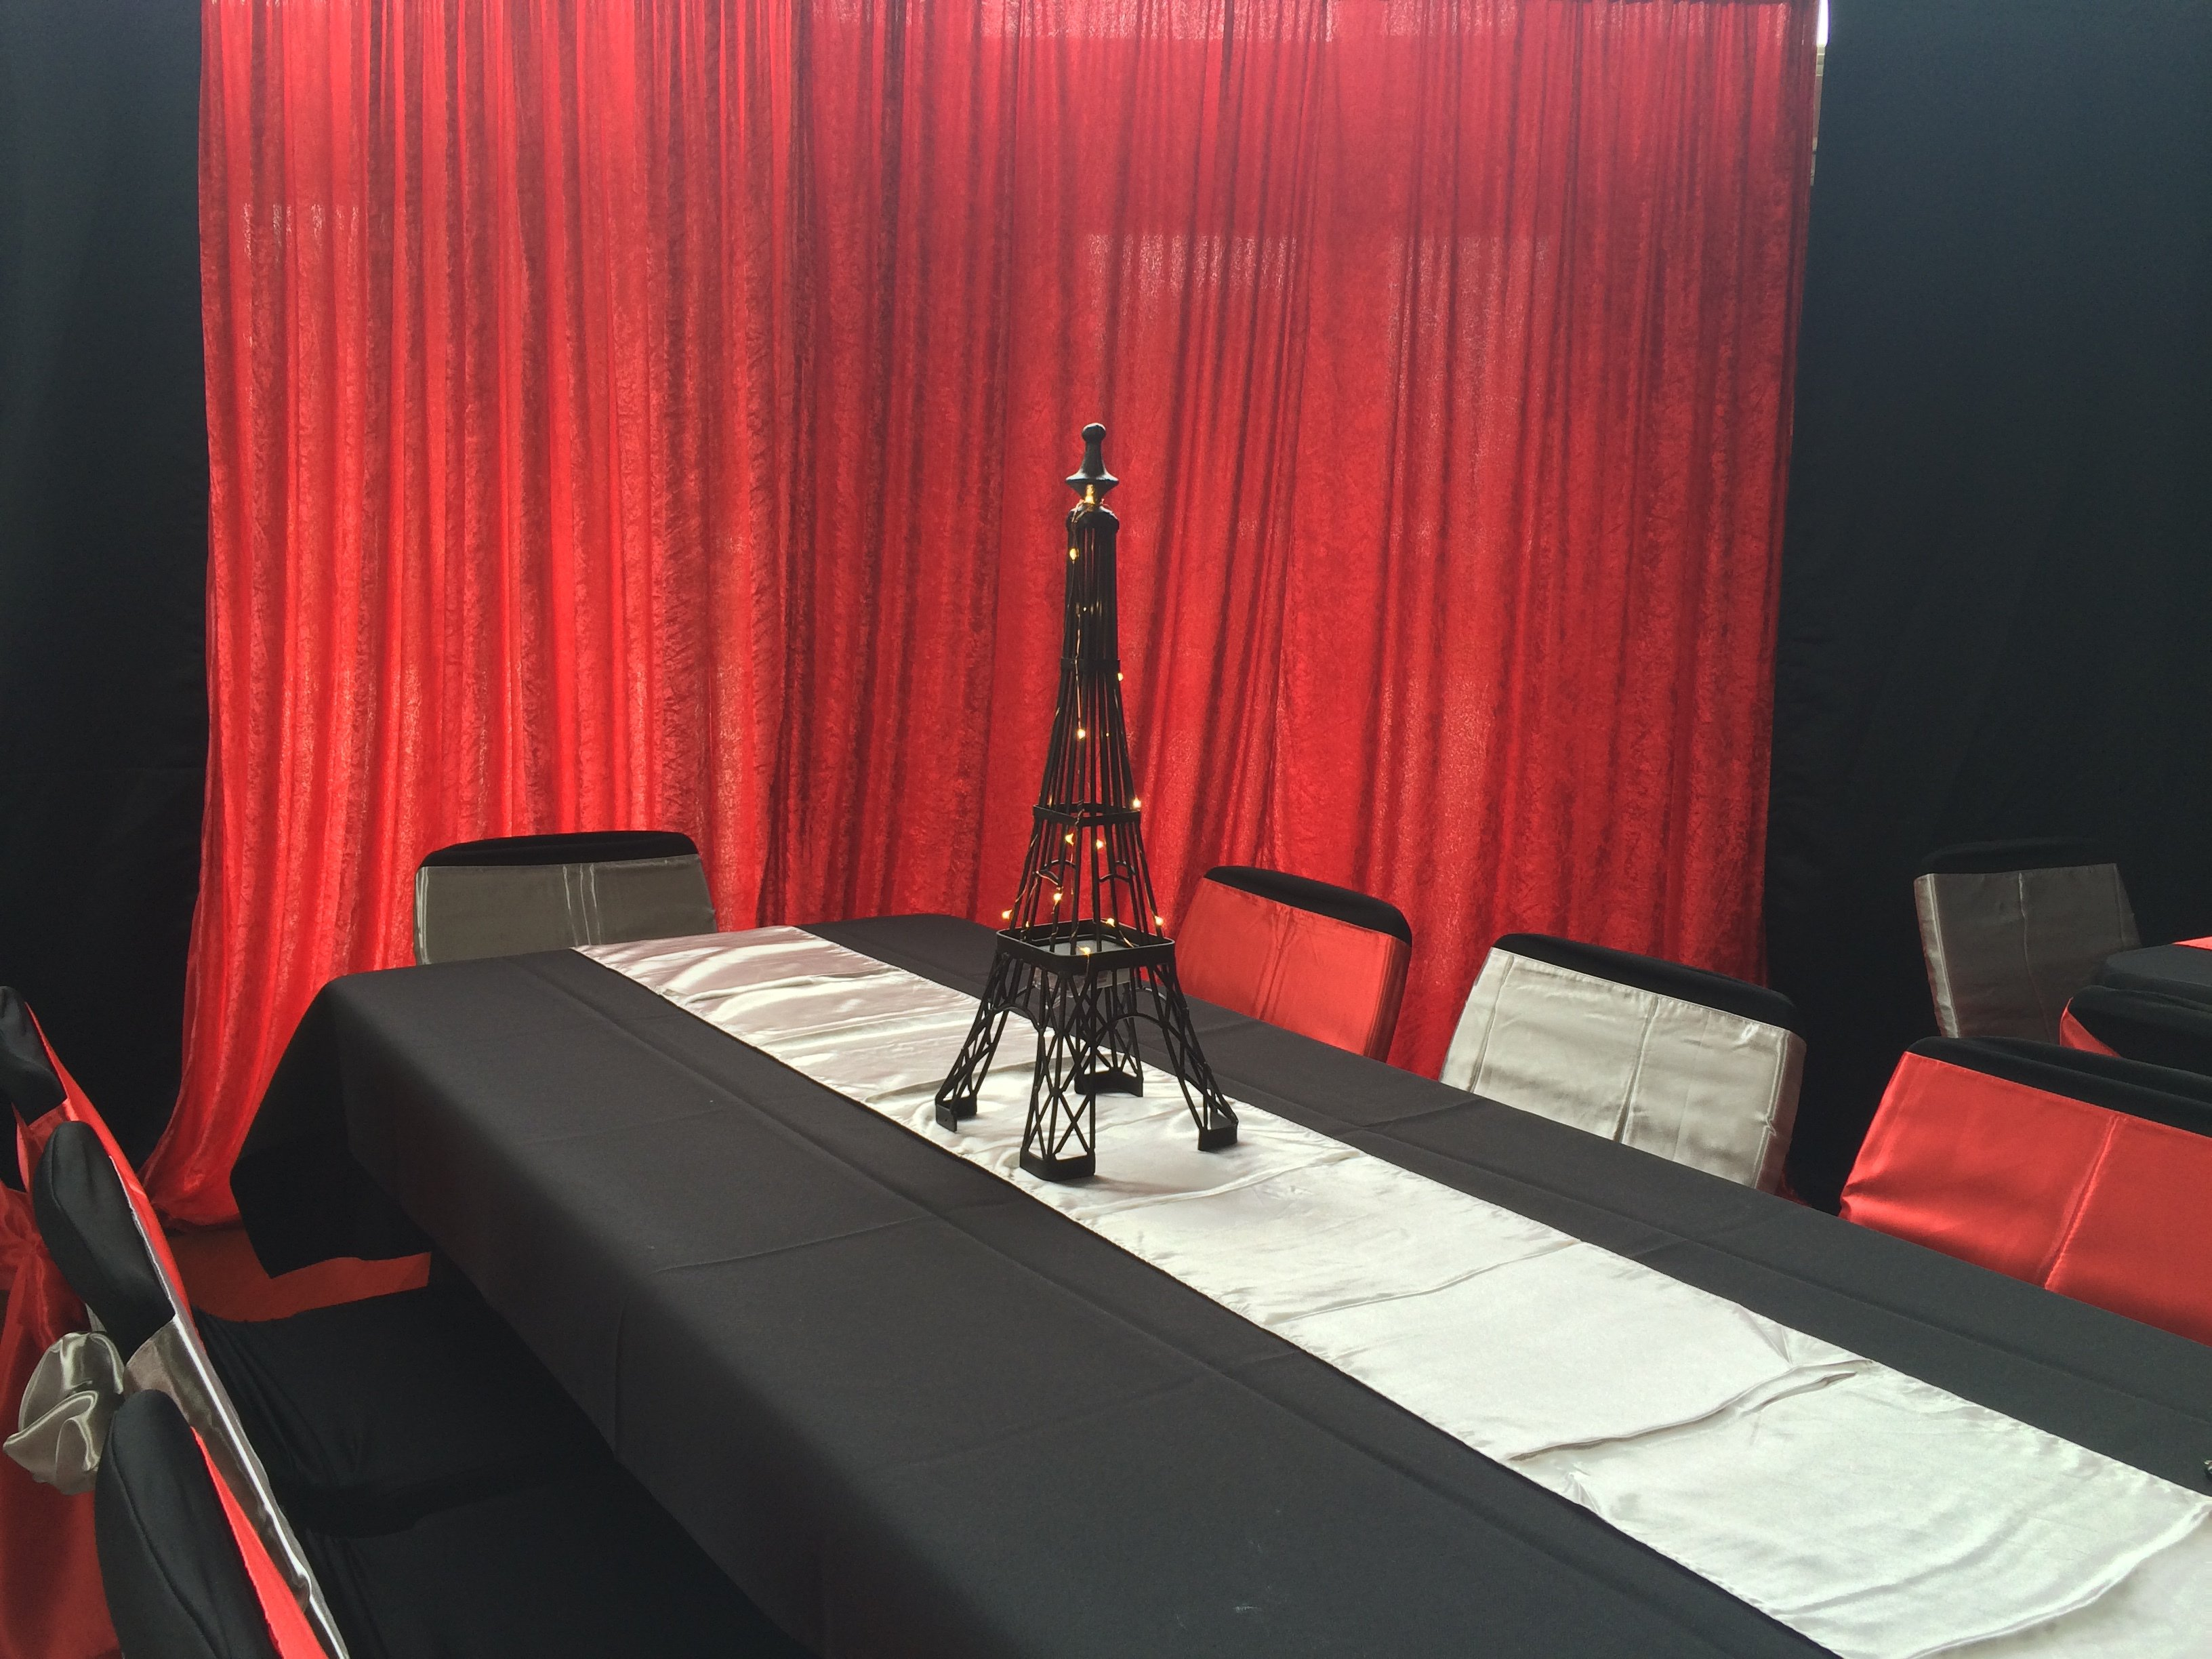 Red Panne wall draping 3m wide x 3m highHire price $30 Incl frames & gst